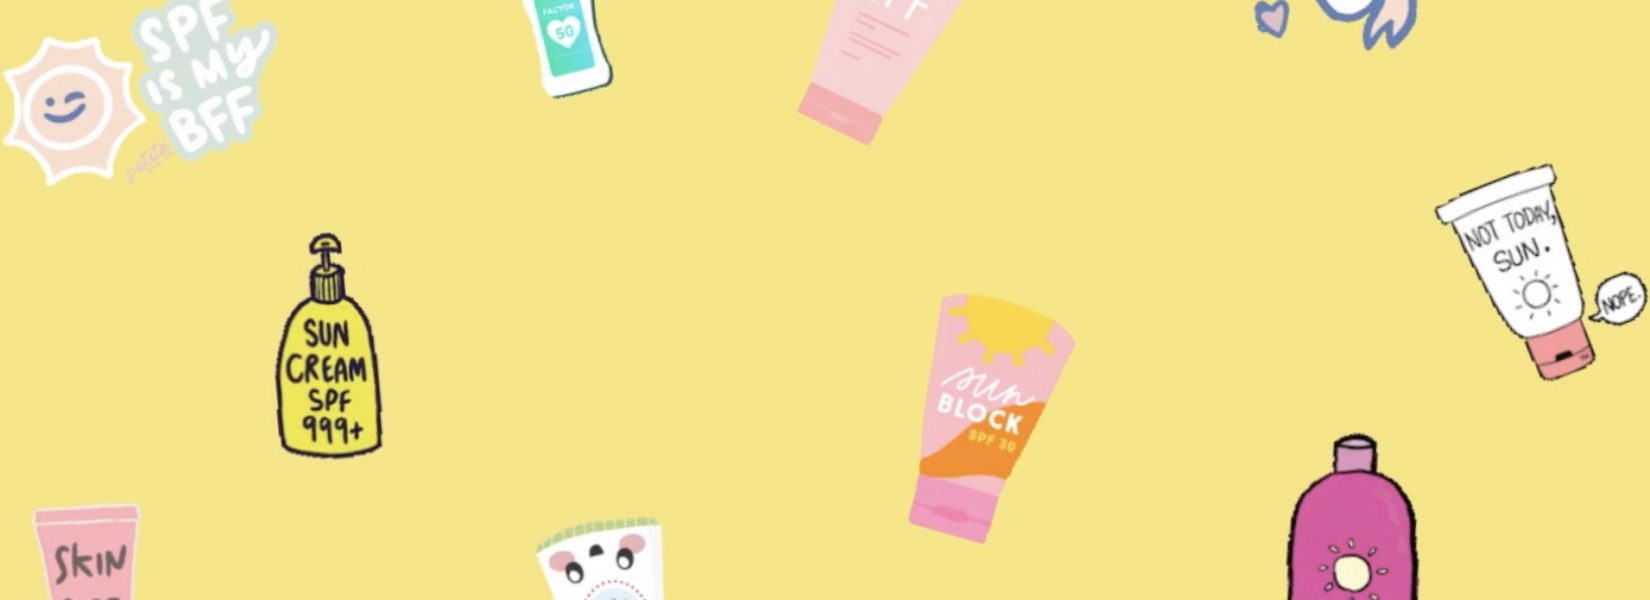 TOP SAFE SUNSCREEN RECOMMENDATIONS